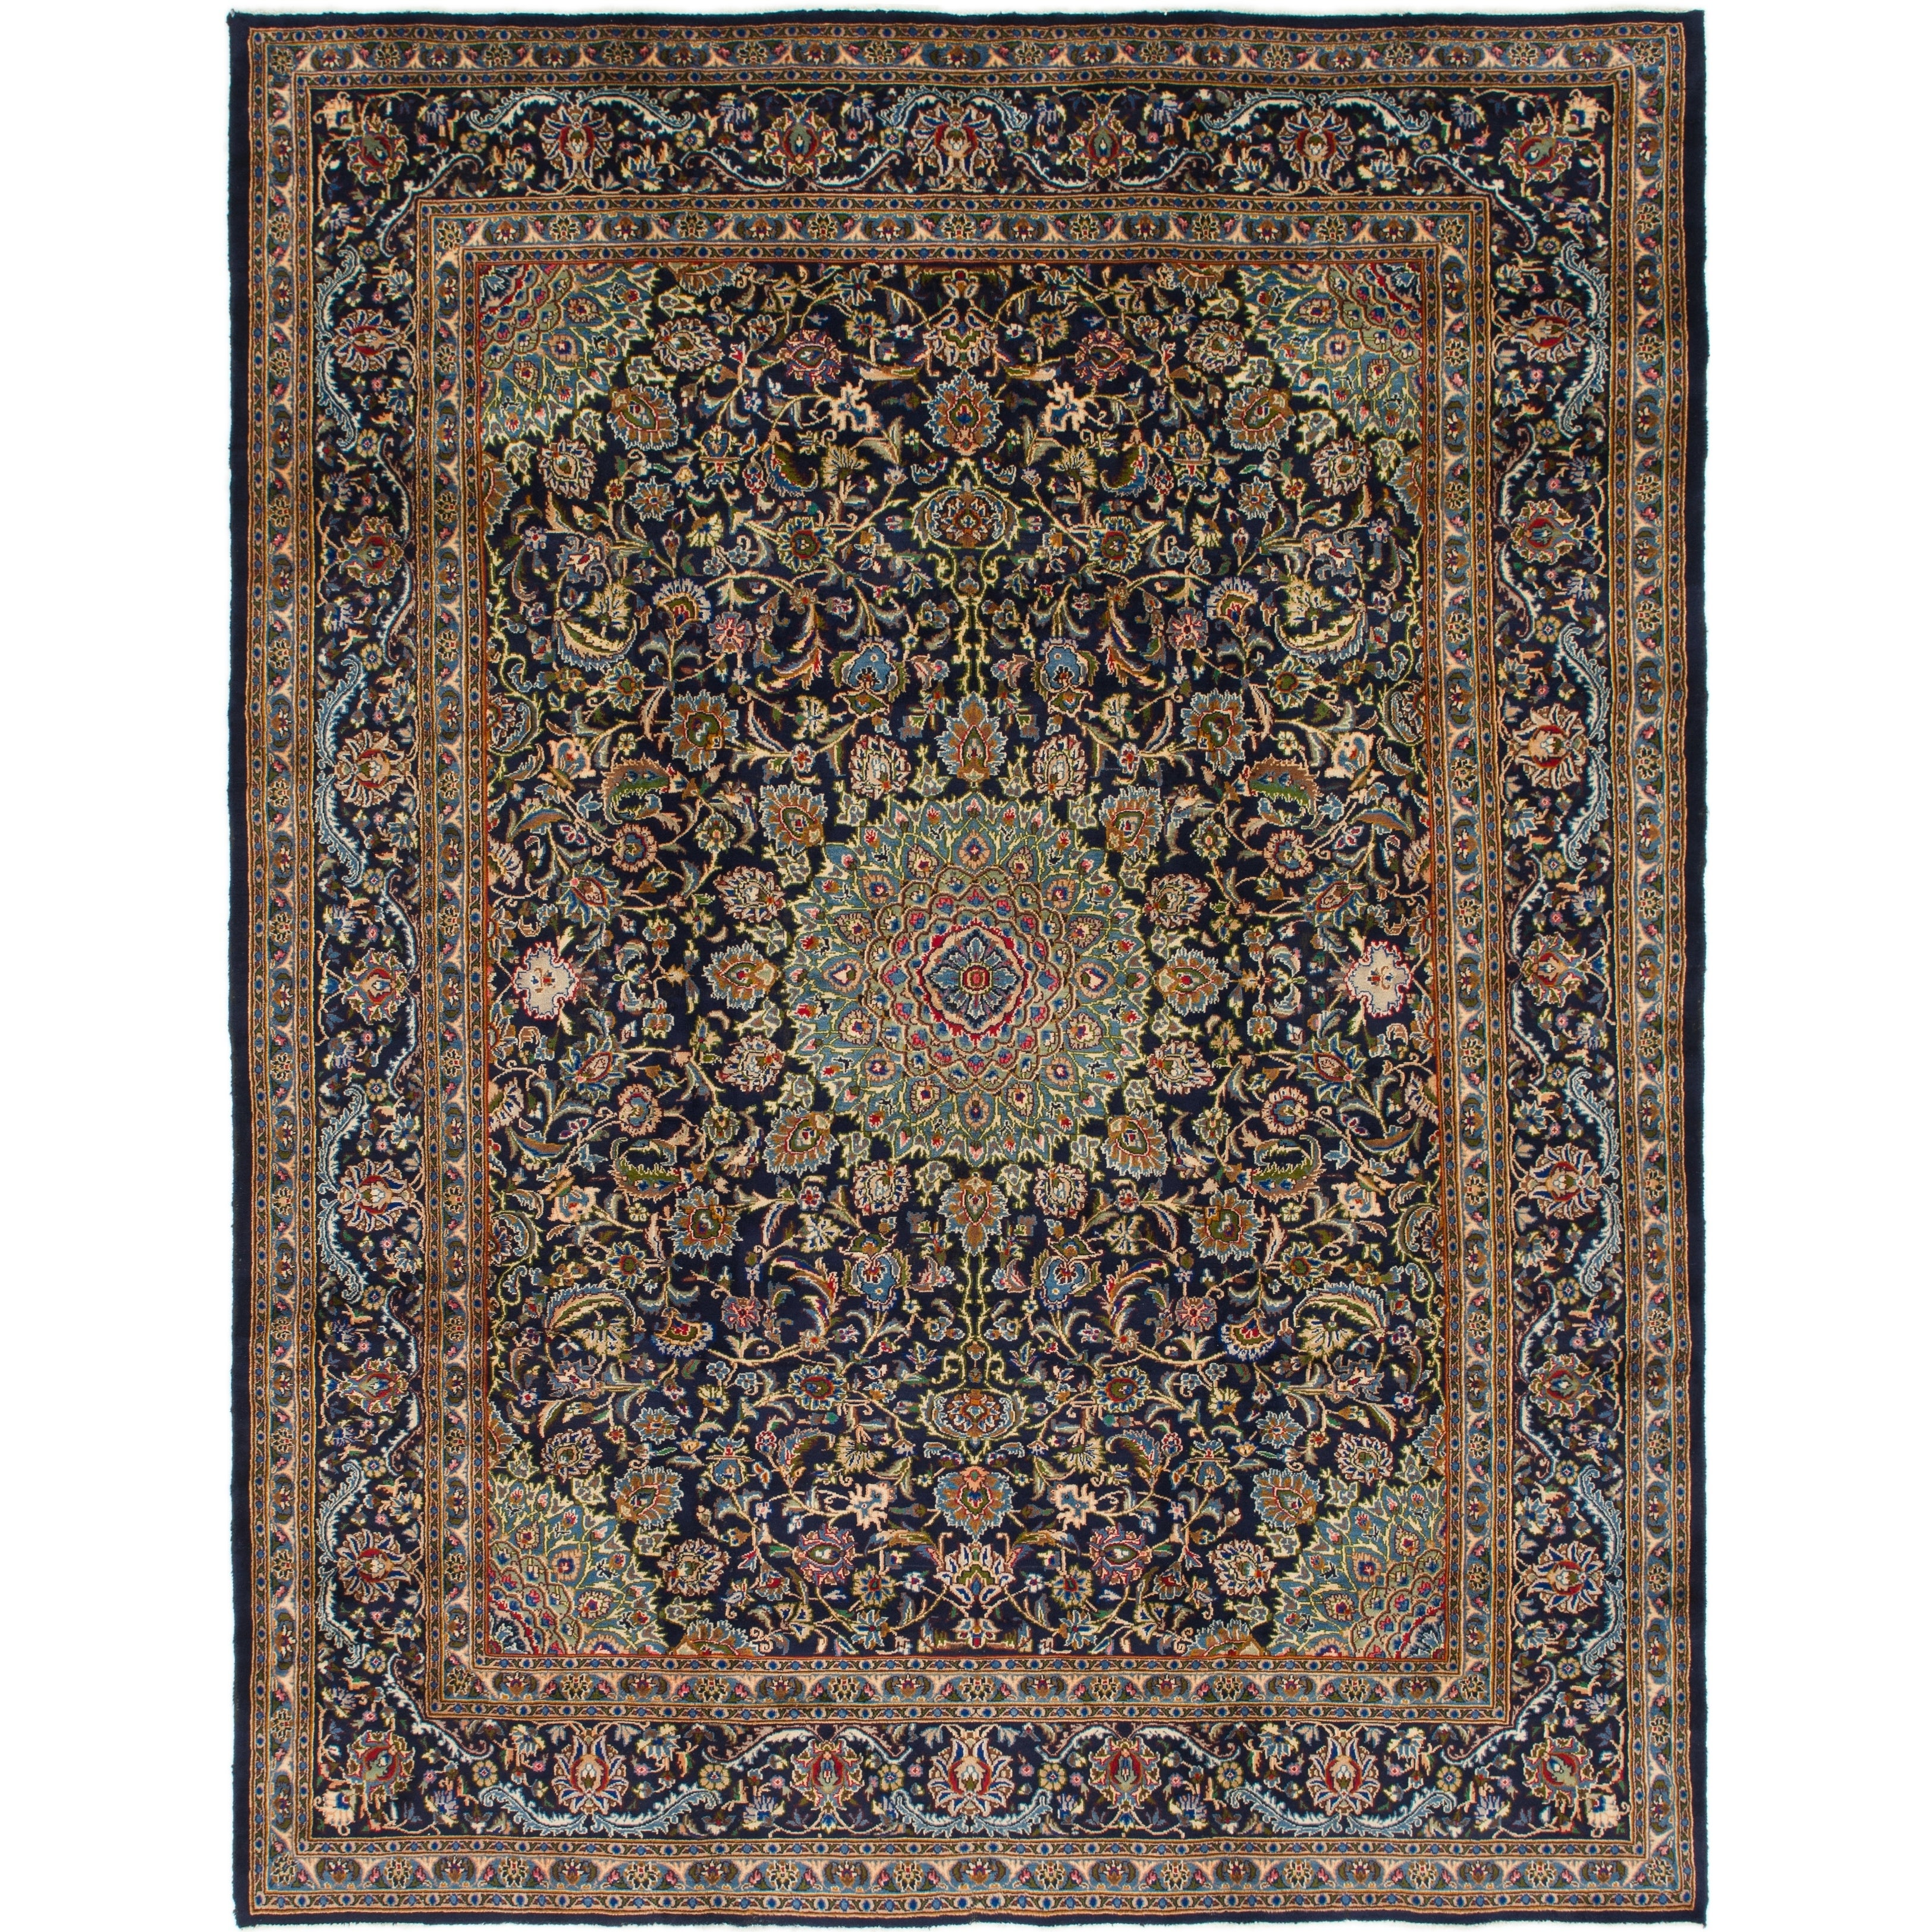 Hand Knotted Kashmar Wool Area Rug - 9 10 x 12 5 (Navy blue - 9 10 x 12 5)